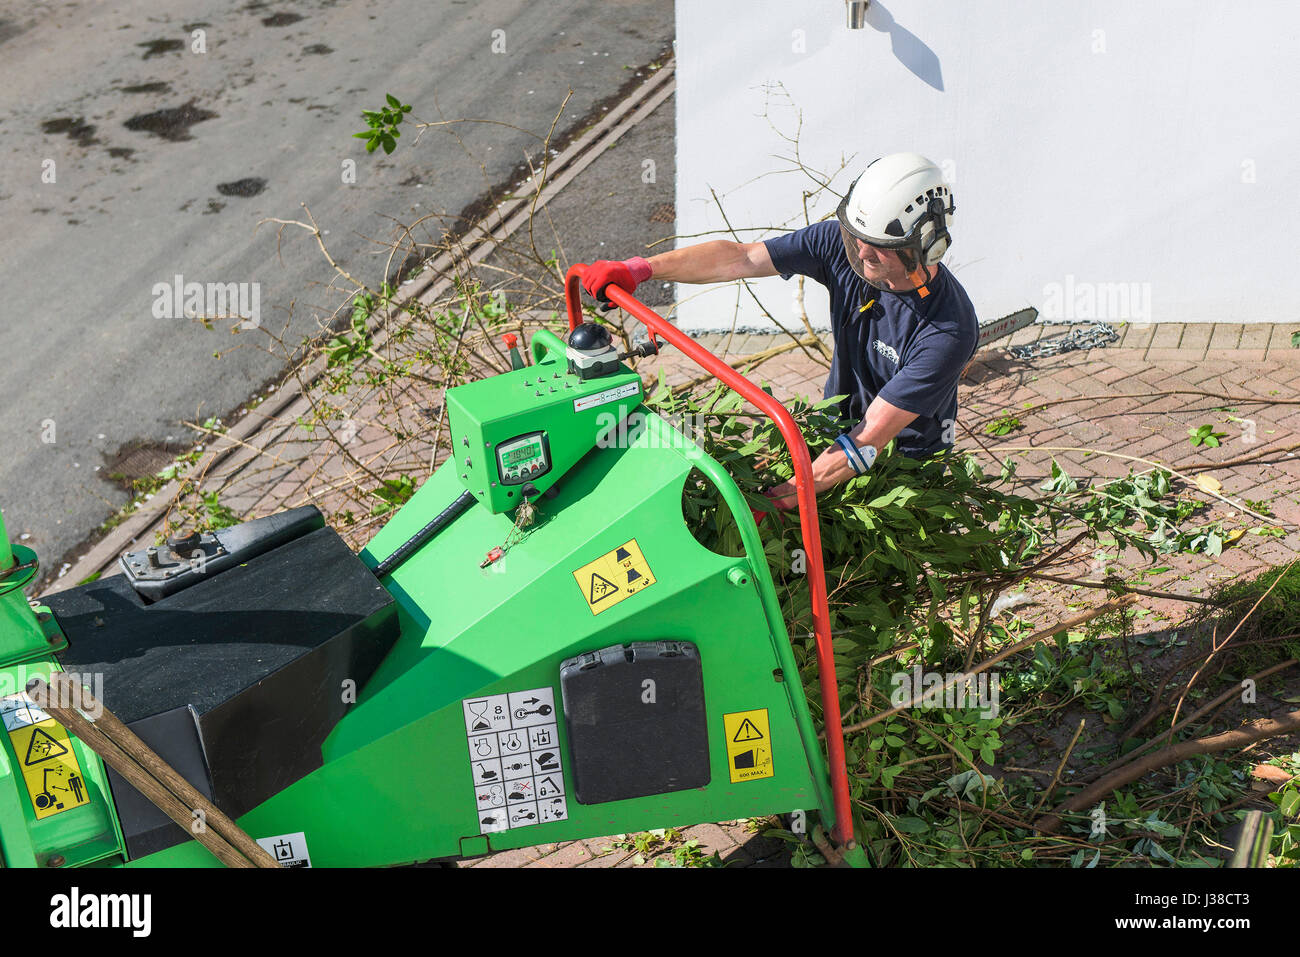 GreenMech Arborist 150 Wood chipper Tree surgeon Arboriculture Branch disposal Foliage Machine Manual worker Protective - Stock Image